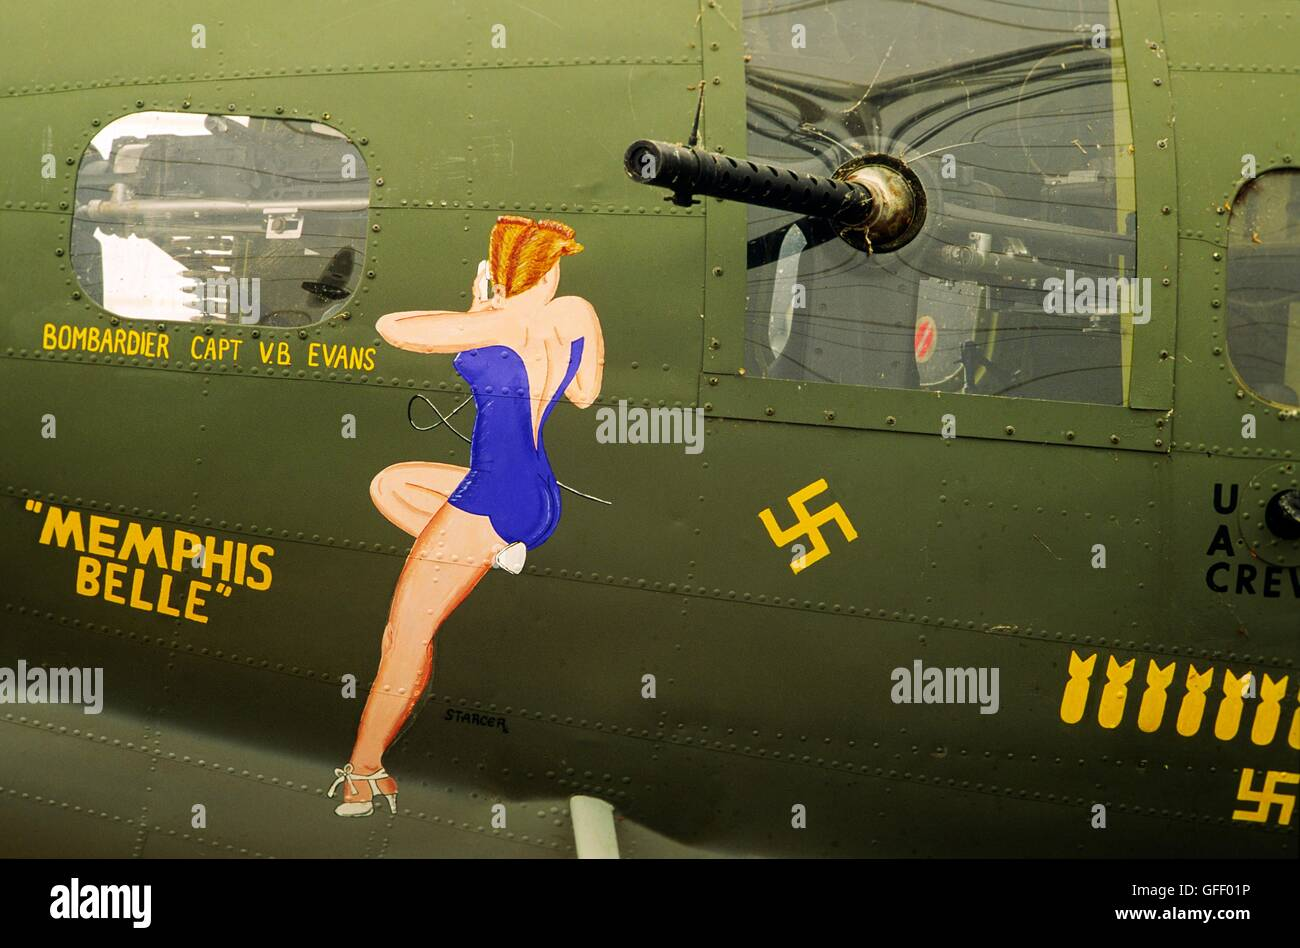 Memphis Belle B-17 World War Two bomber airplane on display at Mud Island, Memphis, Tennessee, USA. Pin-up decal - Stock Image